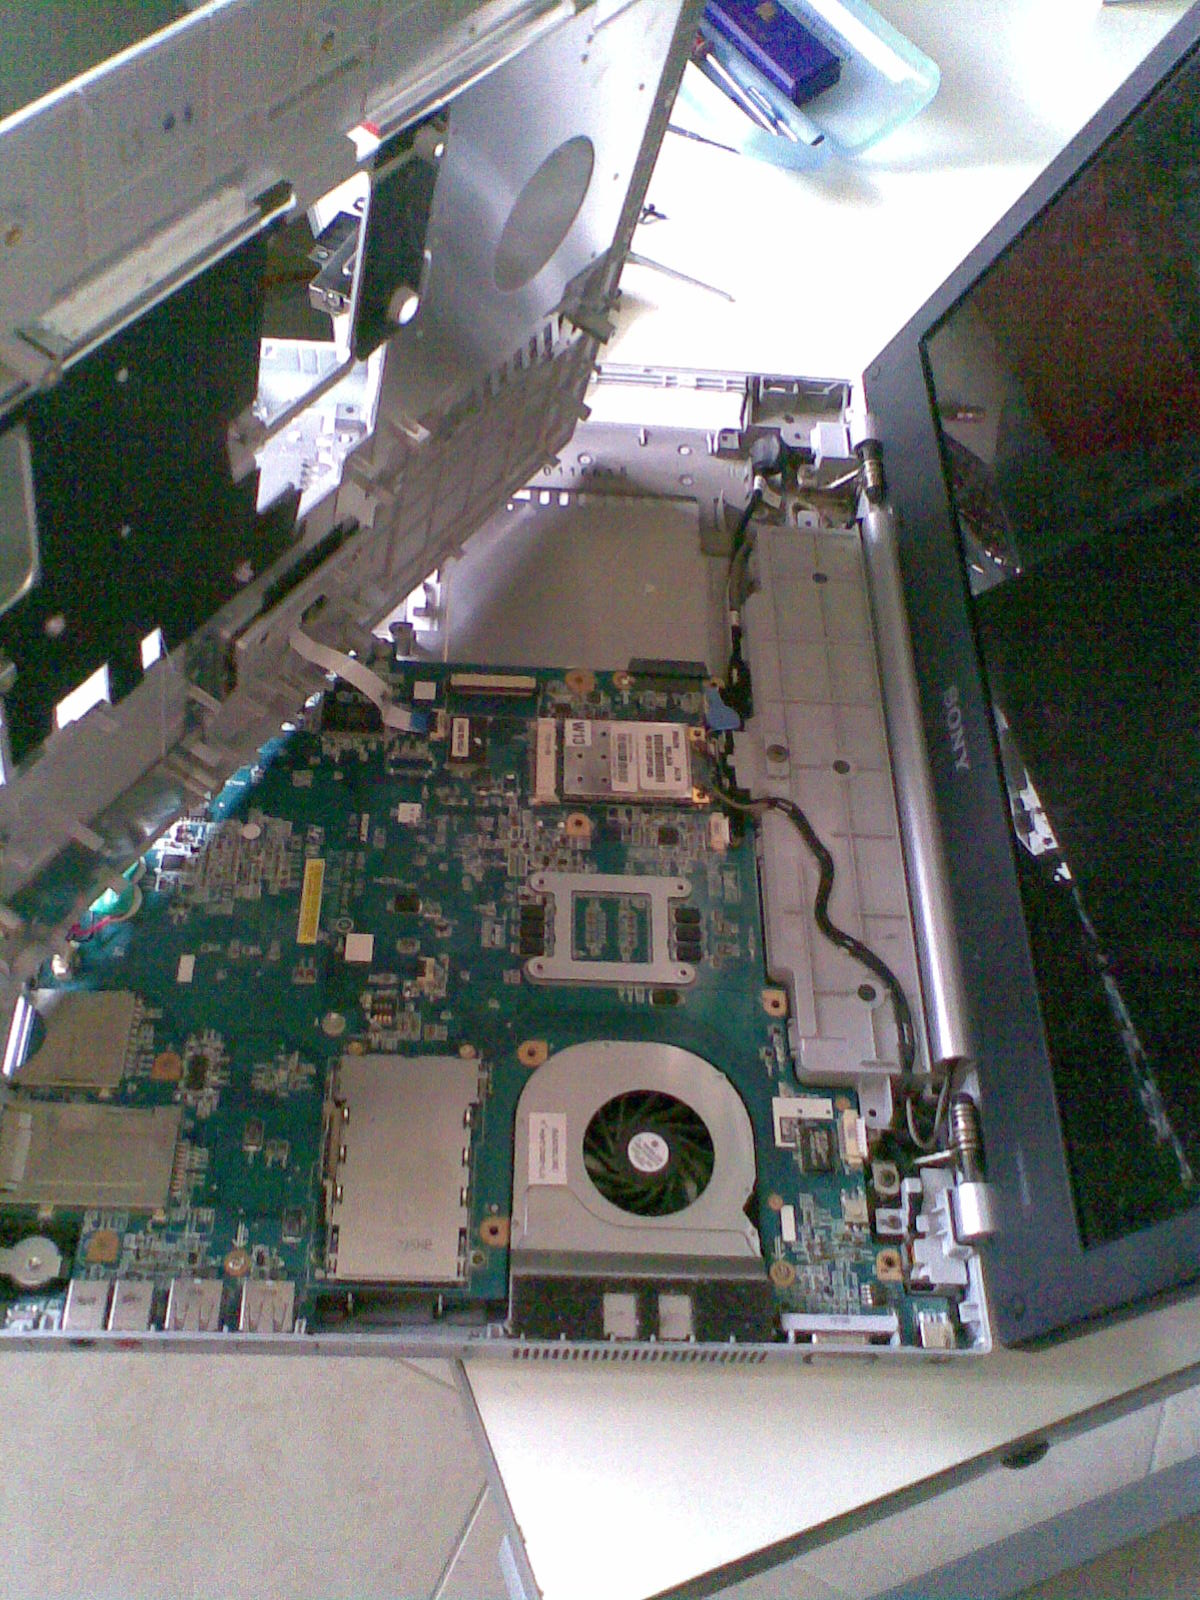 Pc Desktop Computer Laptop Notebook Repair Singapore Arthur Yeo Acer Travelmate 4150 4650 Schematic Diagram Give Me A Call Especially When Other Repairer Exhausted What They Can Do For Your Precious